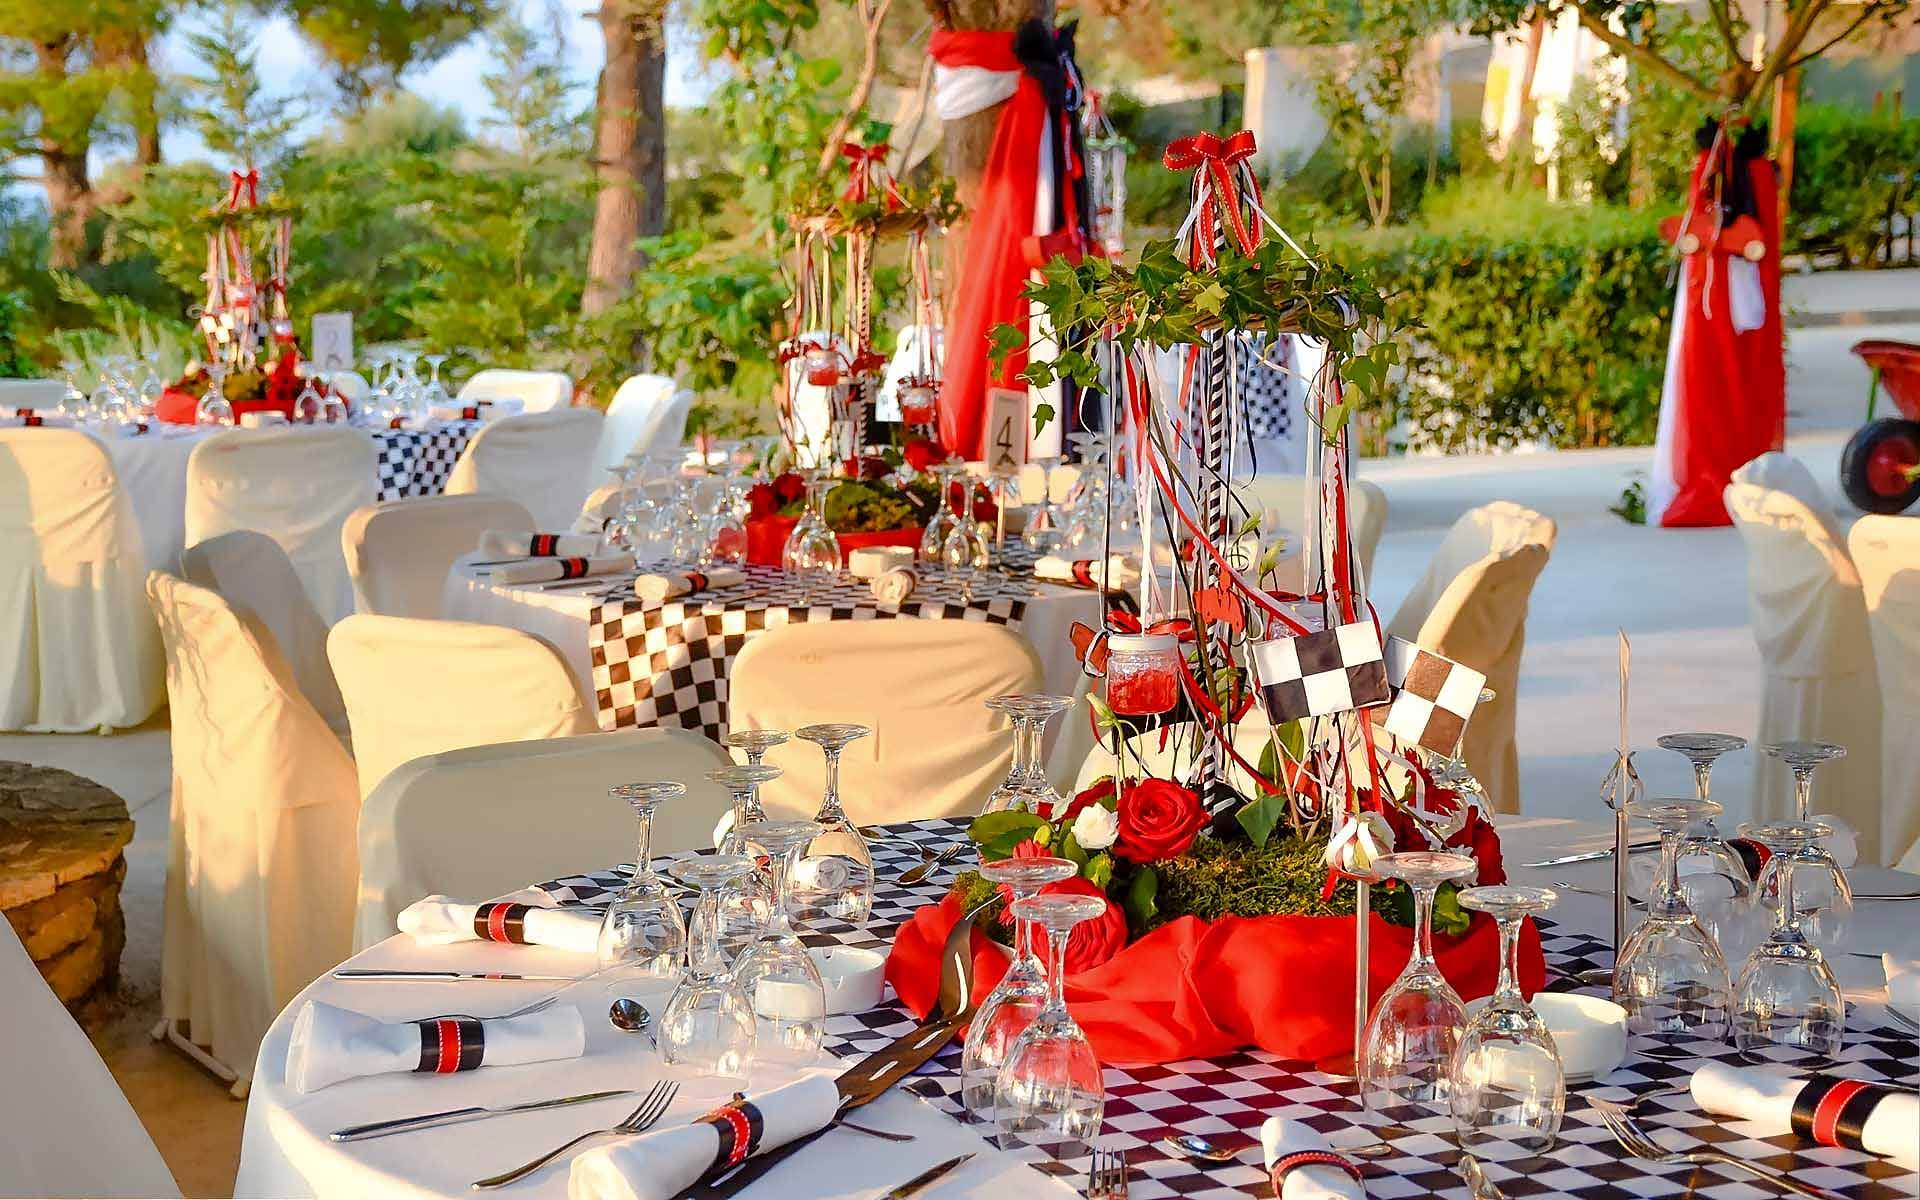 Elegant-Flower-Carousel-Centerpiece-In-Red-Flowers-And-Flags